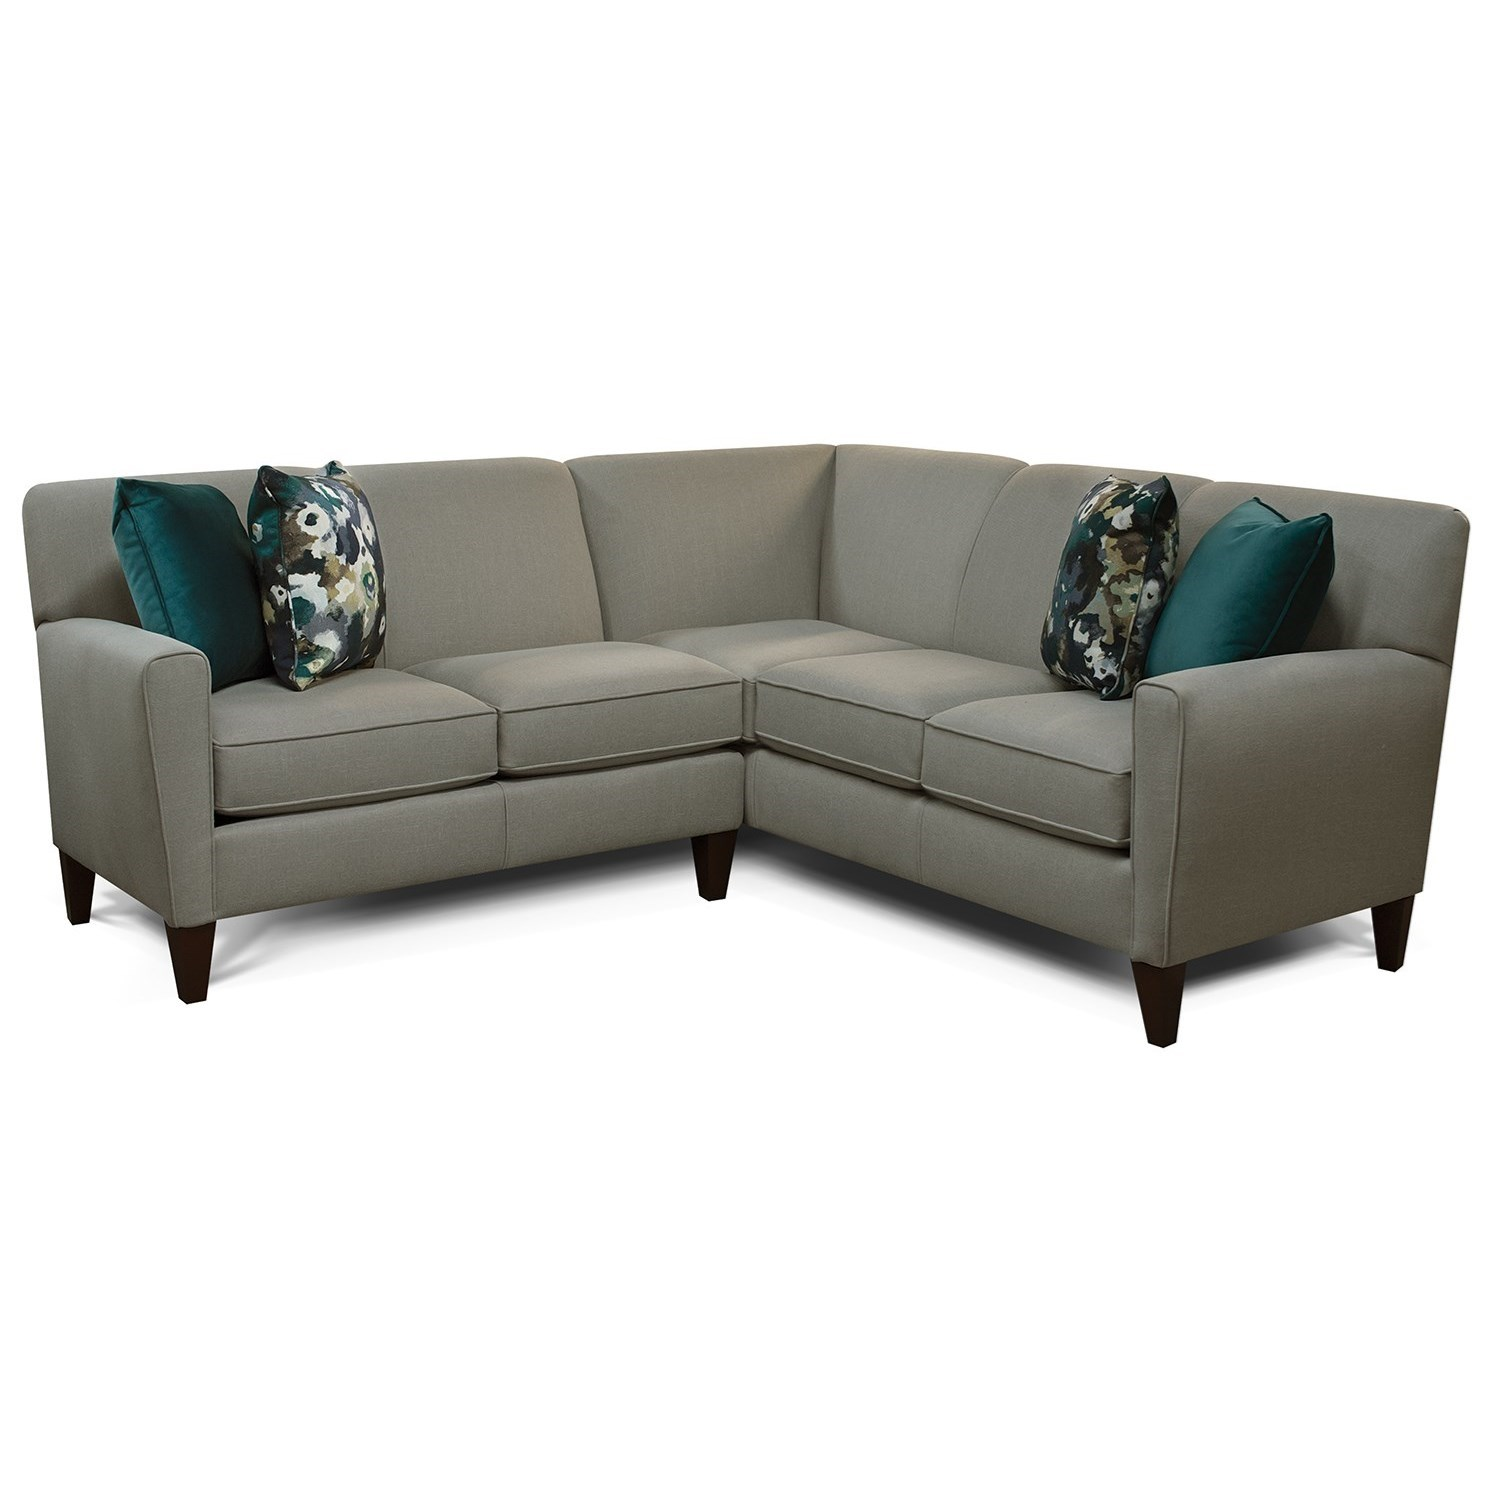 V620 2-Piece Sectional by Alexvale at Northeast Factory Direct